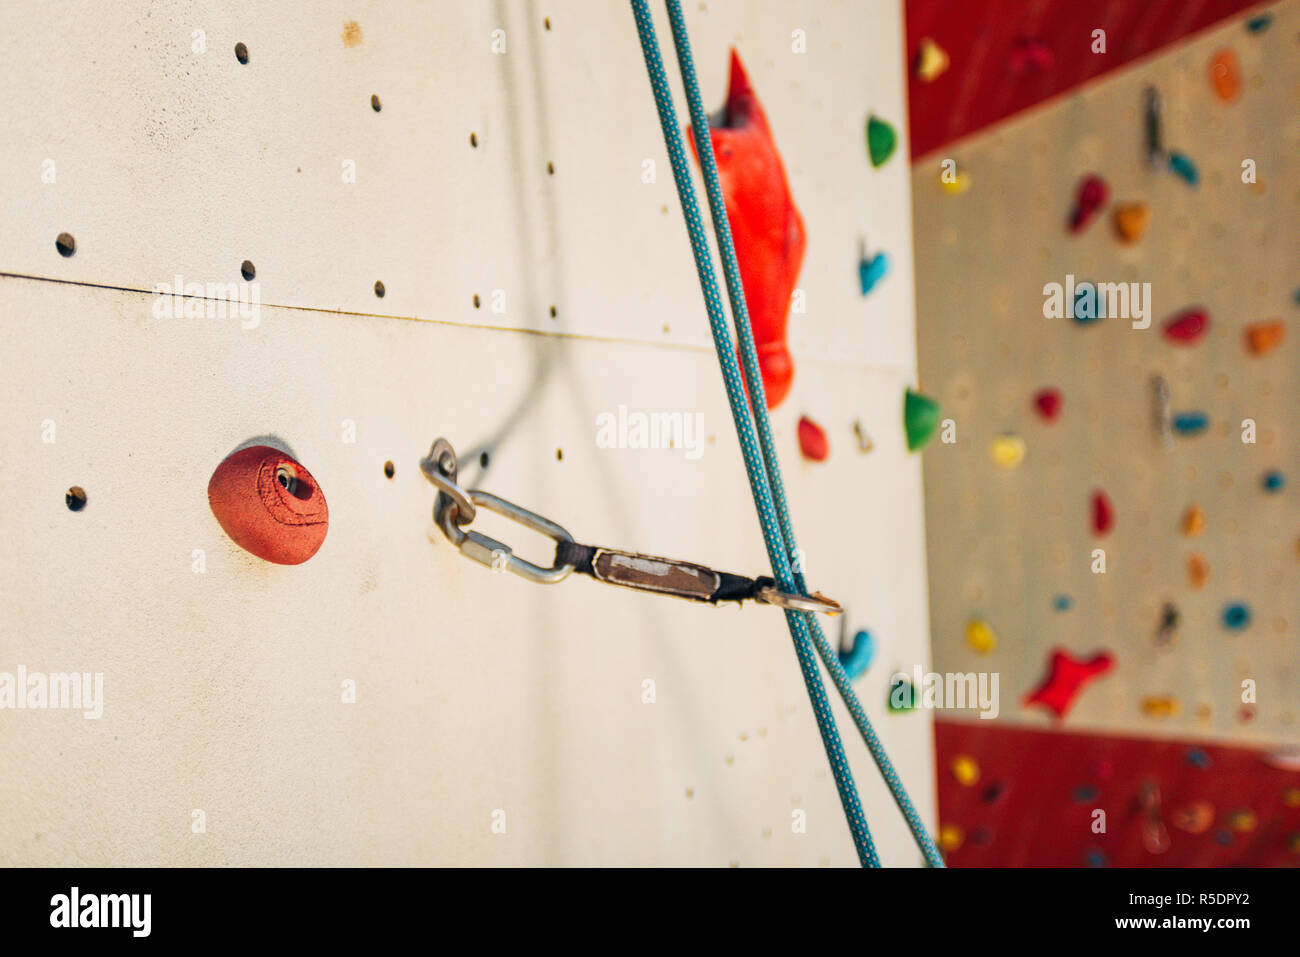 Outdoor rock climbing wall in a sport facility - Stock Image